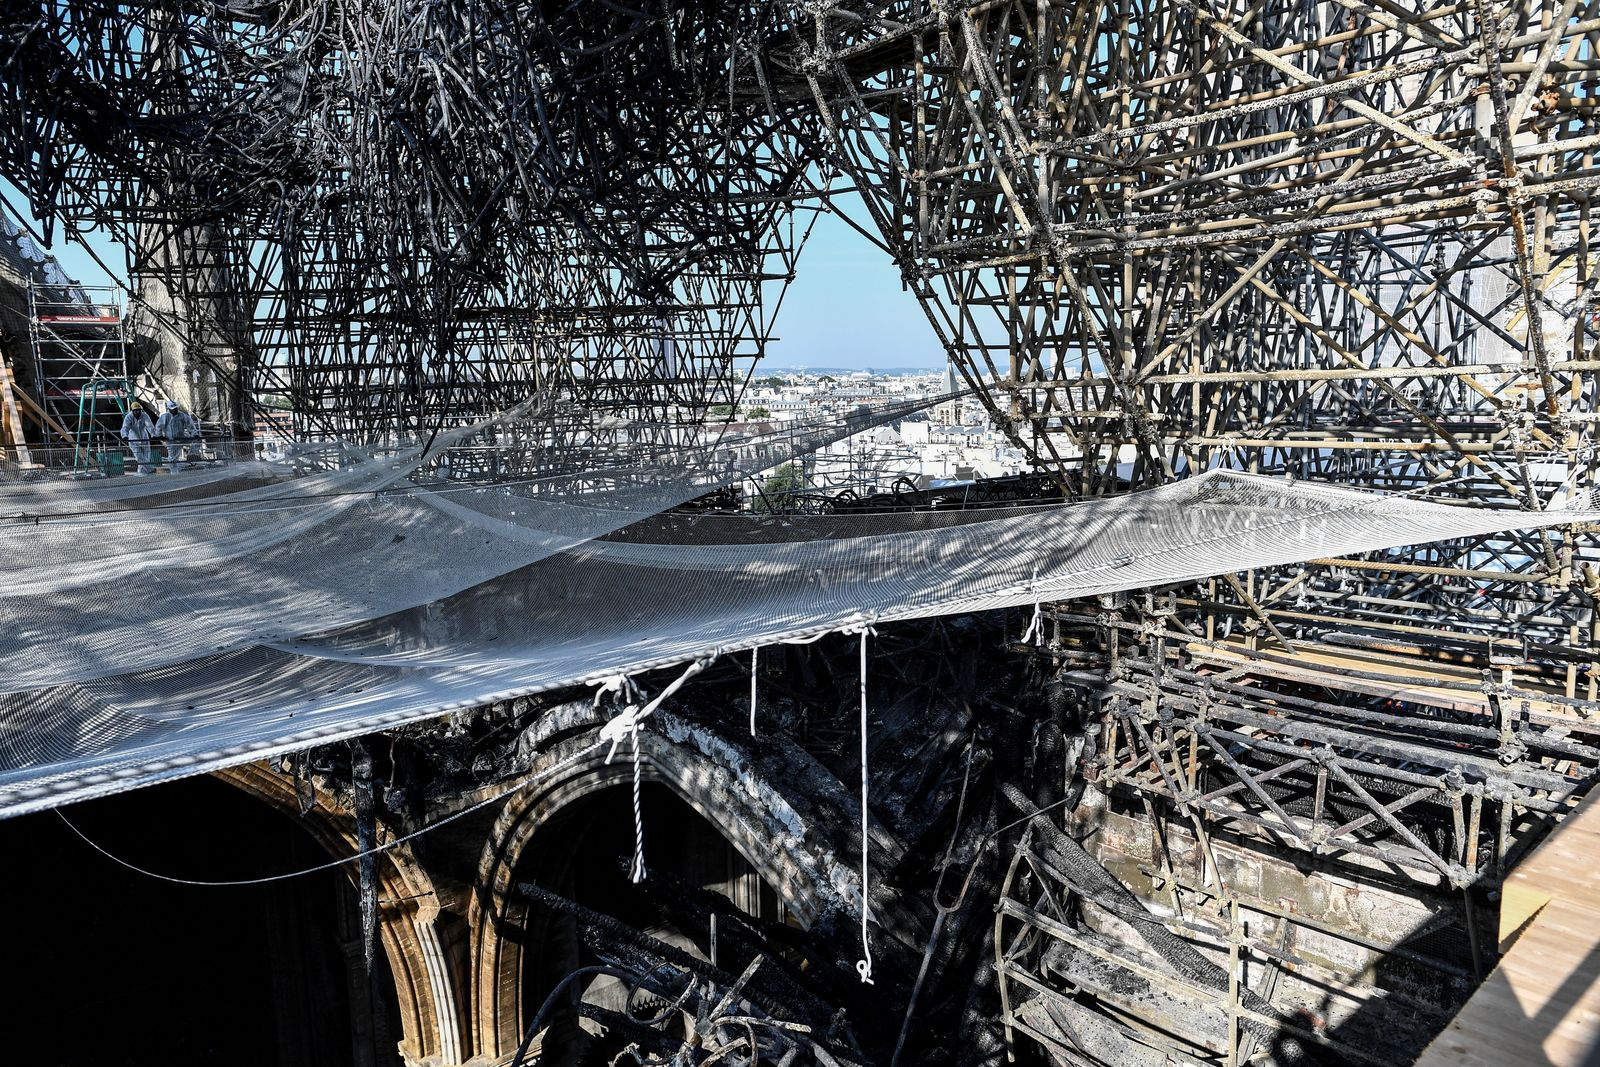 Parts of a destroyed ribbed vault and scaffolding are pictured at the Notre-Dame de Paris Cathedral, Wednesday, July 17, 2019 in Paris. (Stephane de Sakutin/Pool via AP)